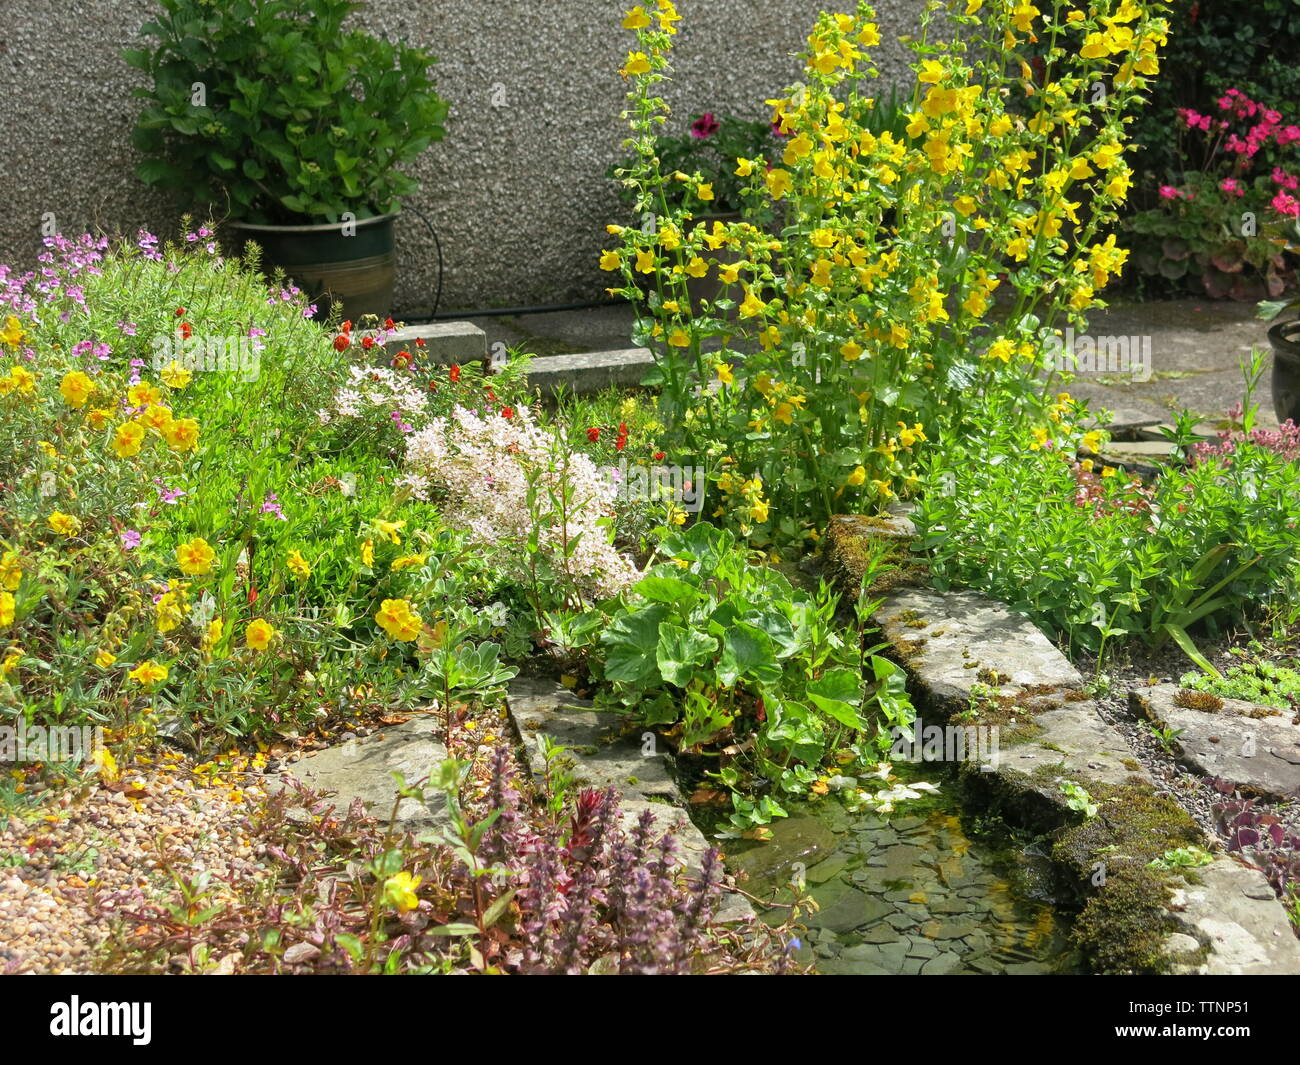 A small garden stream with running water provides a habitat for insects and birds, and a colourful array of rockery plants; a Scottish garden, June 19 - Stock Image